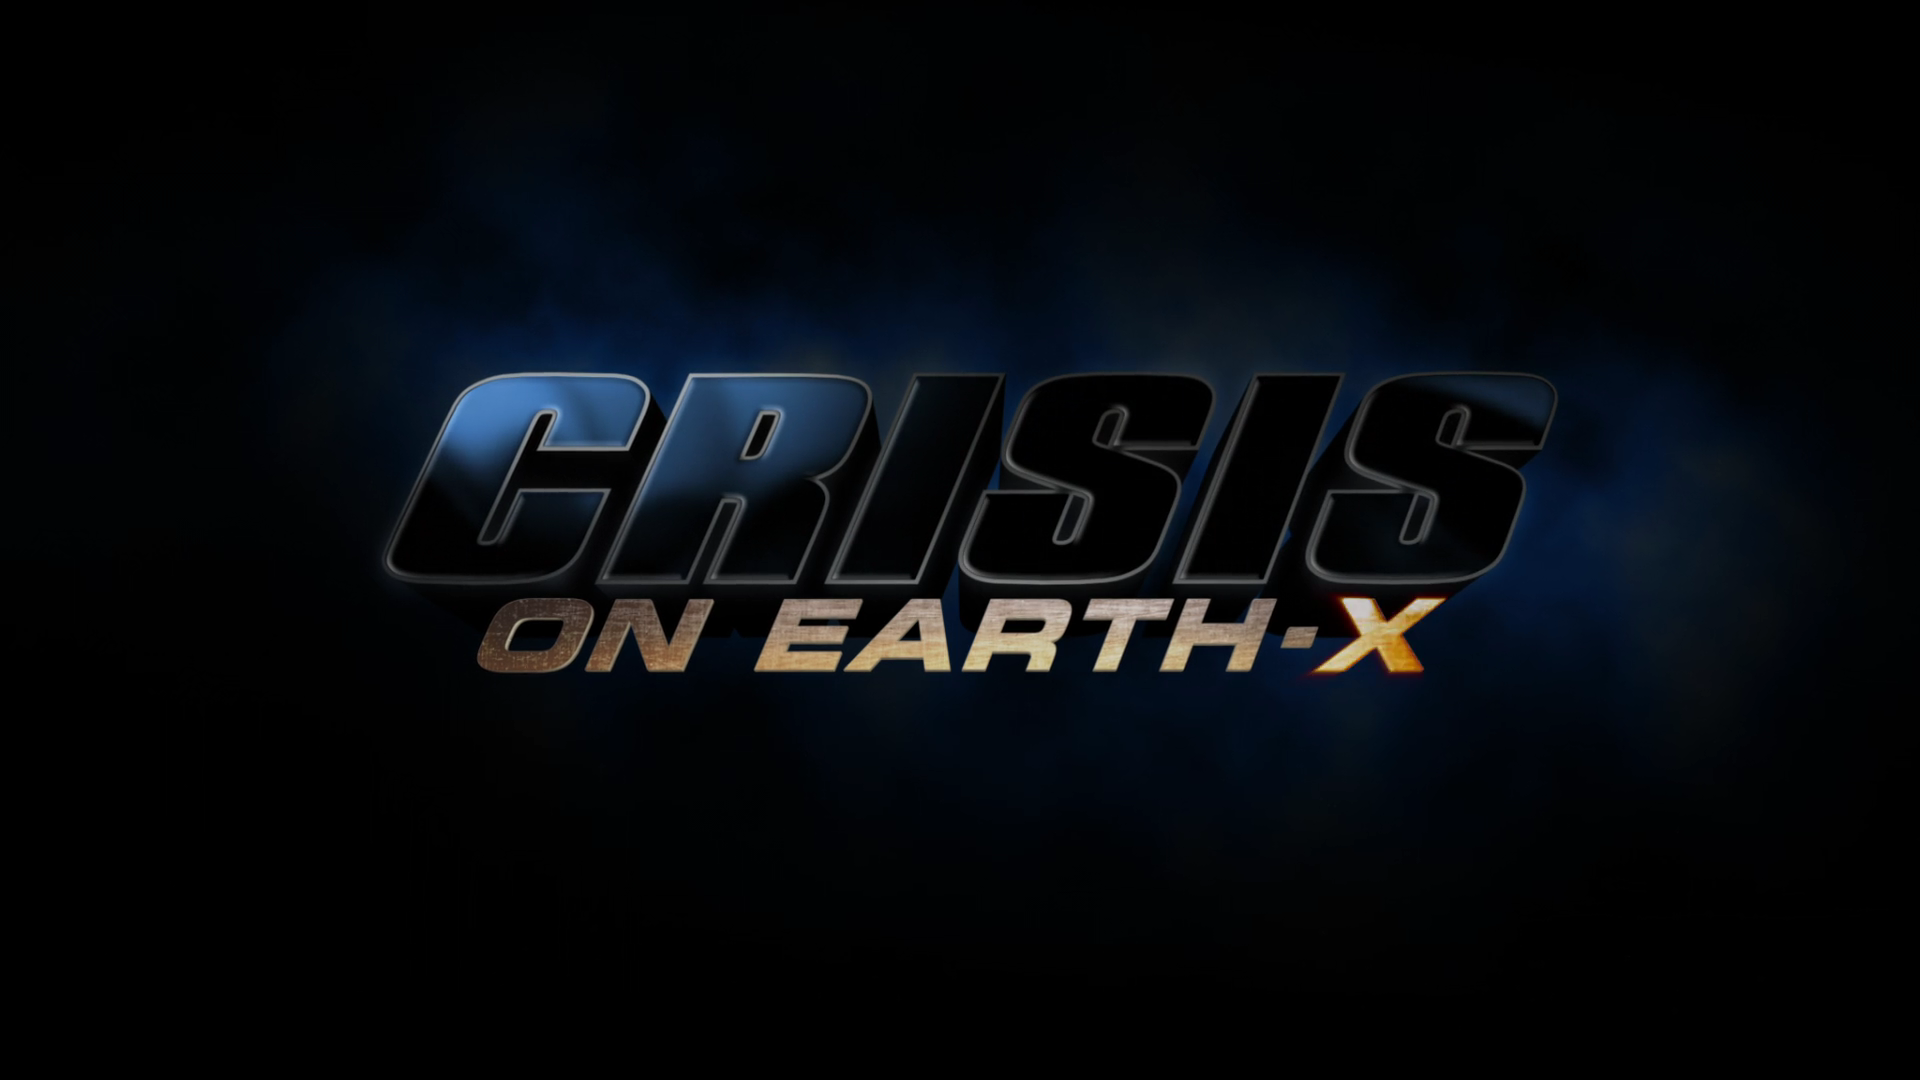 Crisis on Earth-X | Arrowverse Wiki | FANDOM powered by Wikia